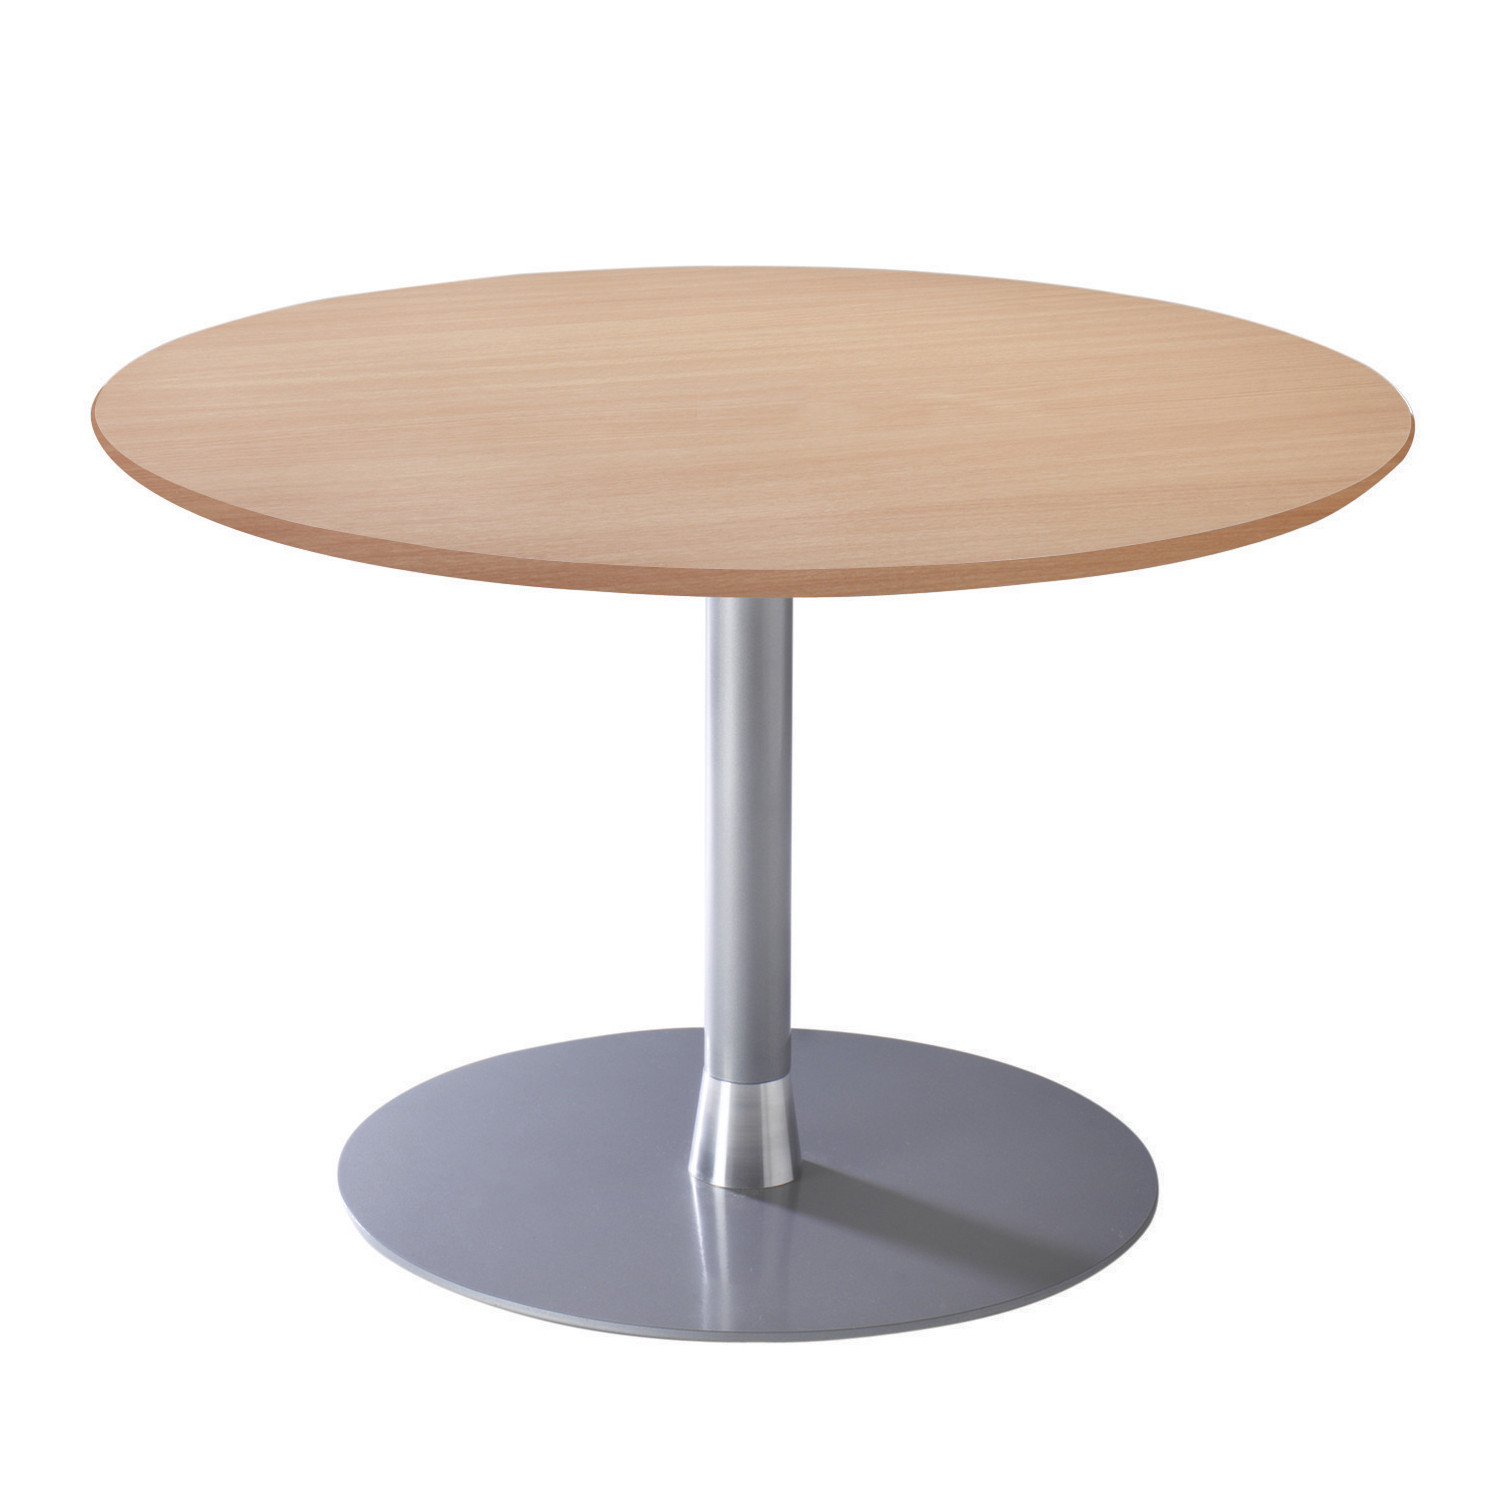 Connection Bobbin Tables